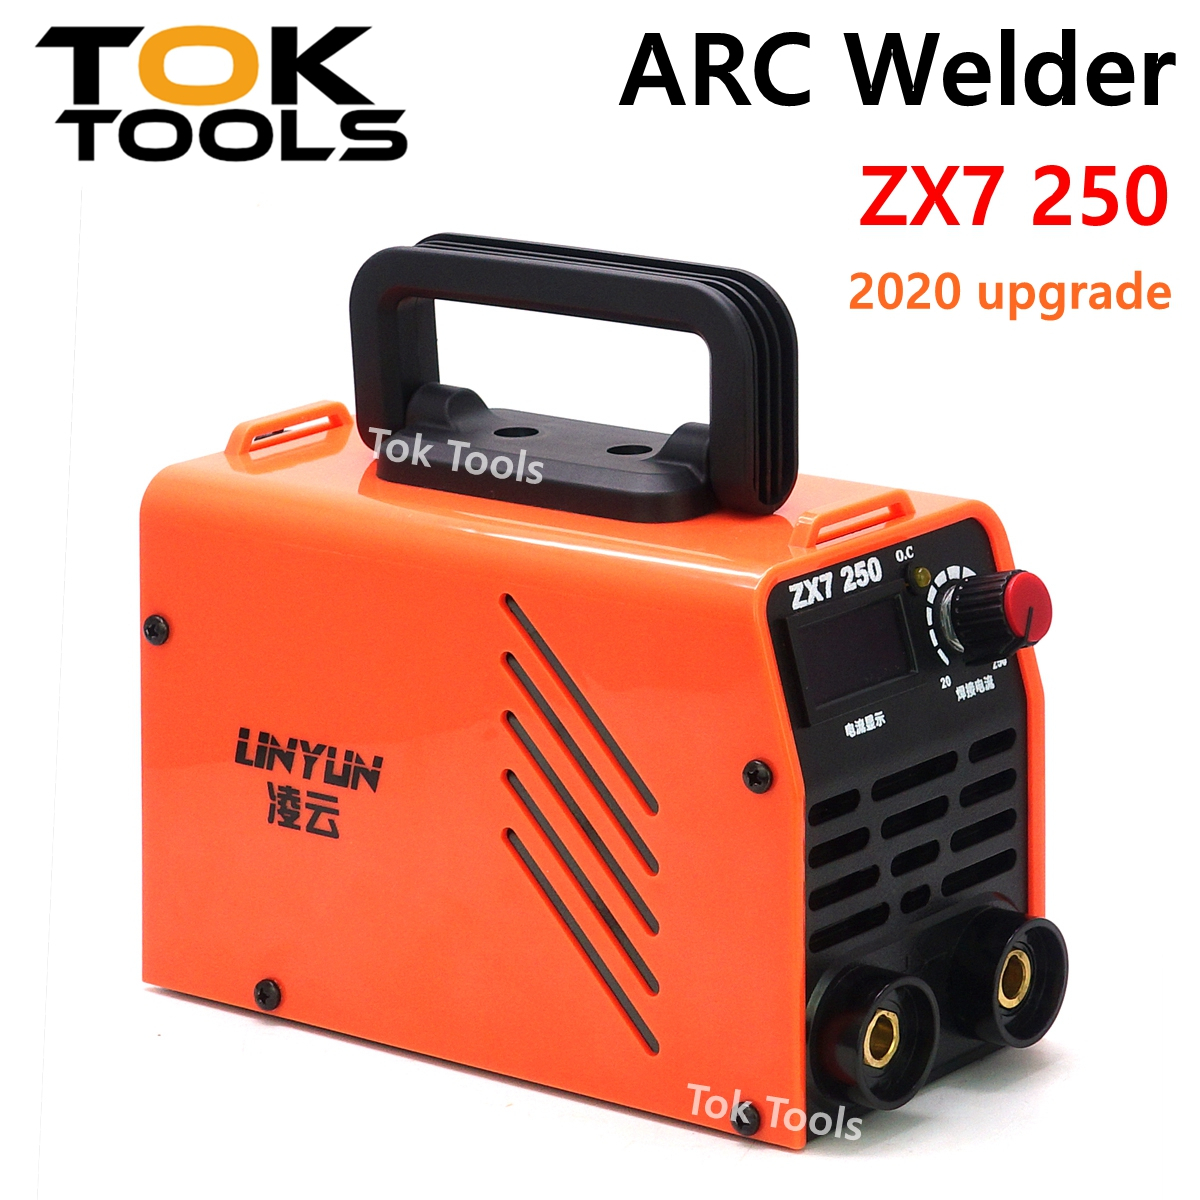 ARC Welder ZX7 250 250A Mini Electric Welding Machine Portable Digital Display MMA ARC DC Inverter Plastic Welder Weld Equipment